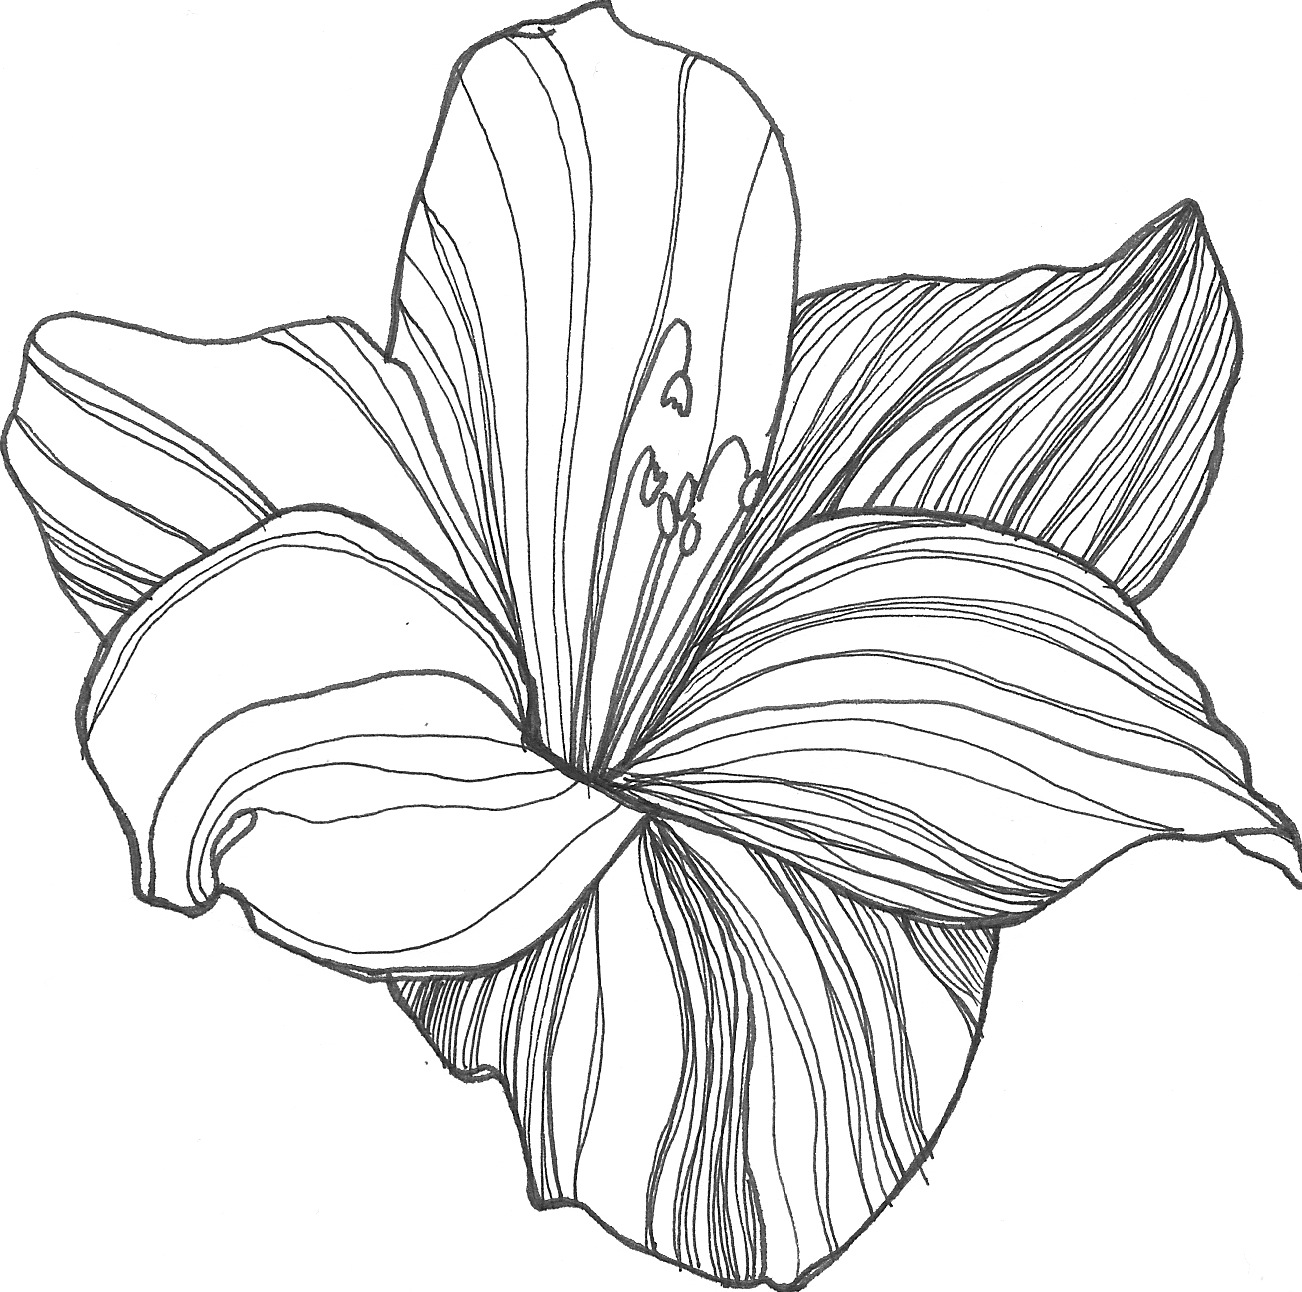 Lotus Flower Drawing Sketch At Getdrawings Com Free For Personal